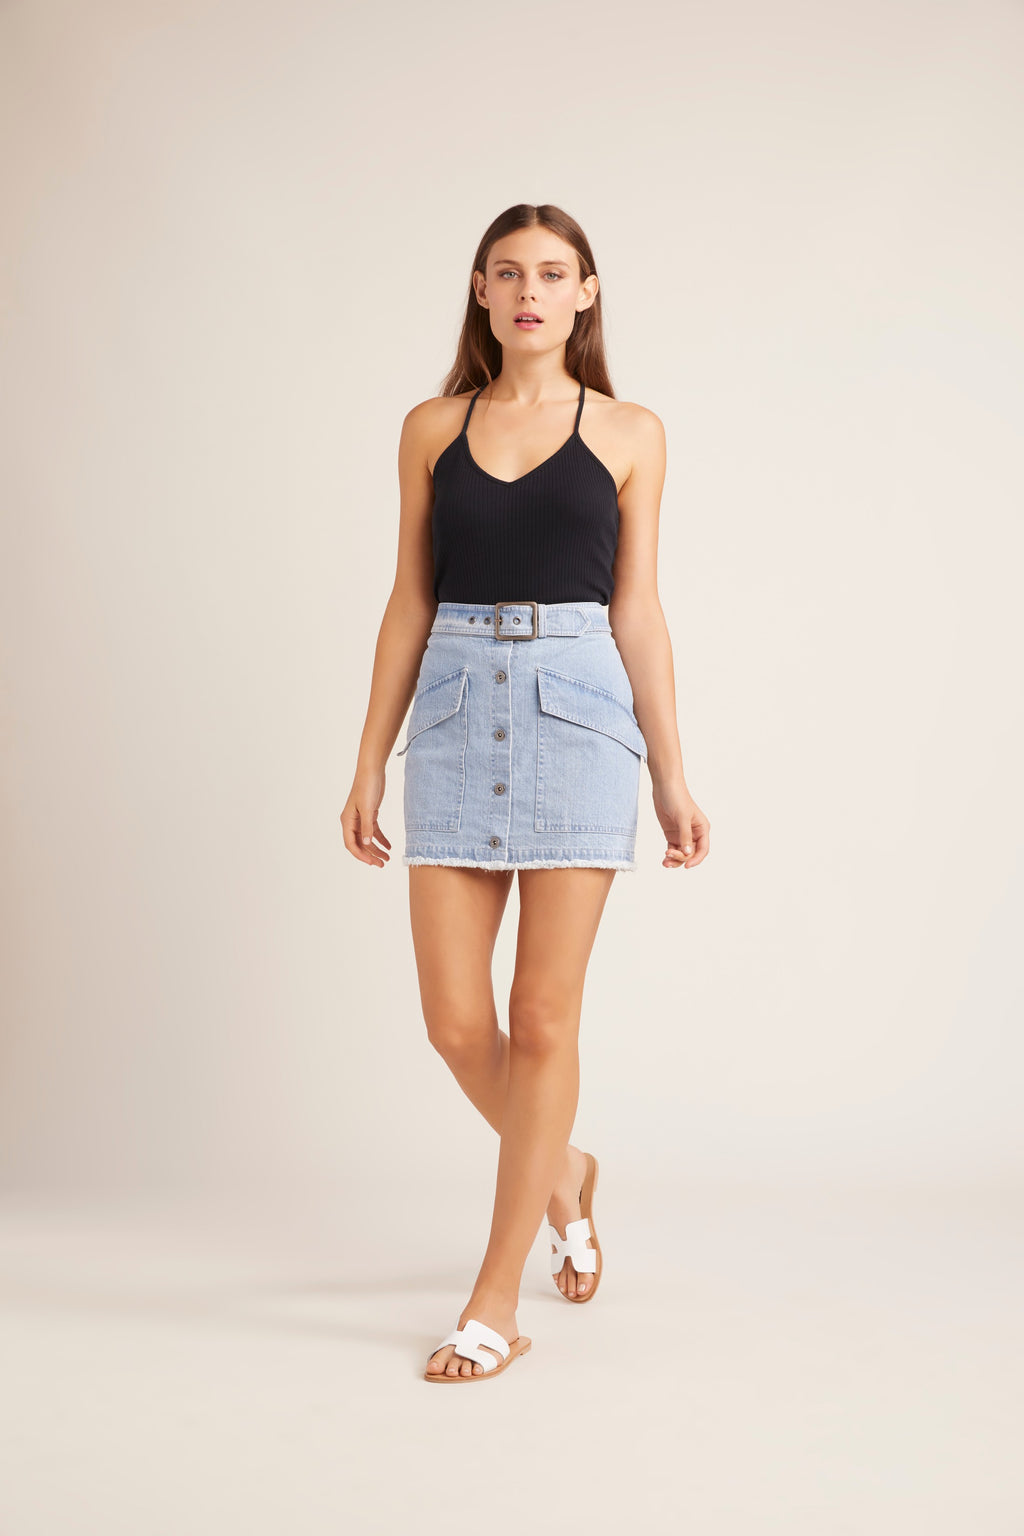 JACK BY BB DAKOTA I Dream of Jeanie Denim Skirt